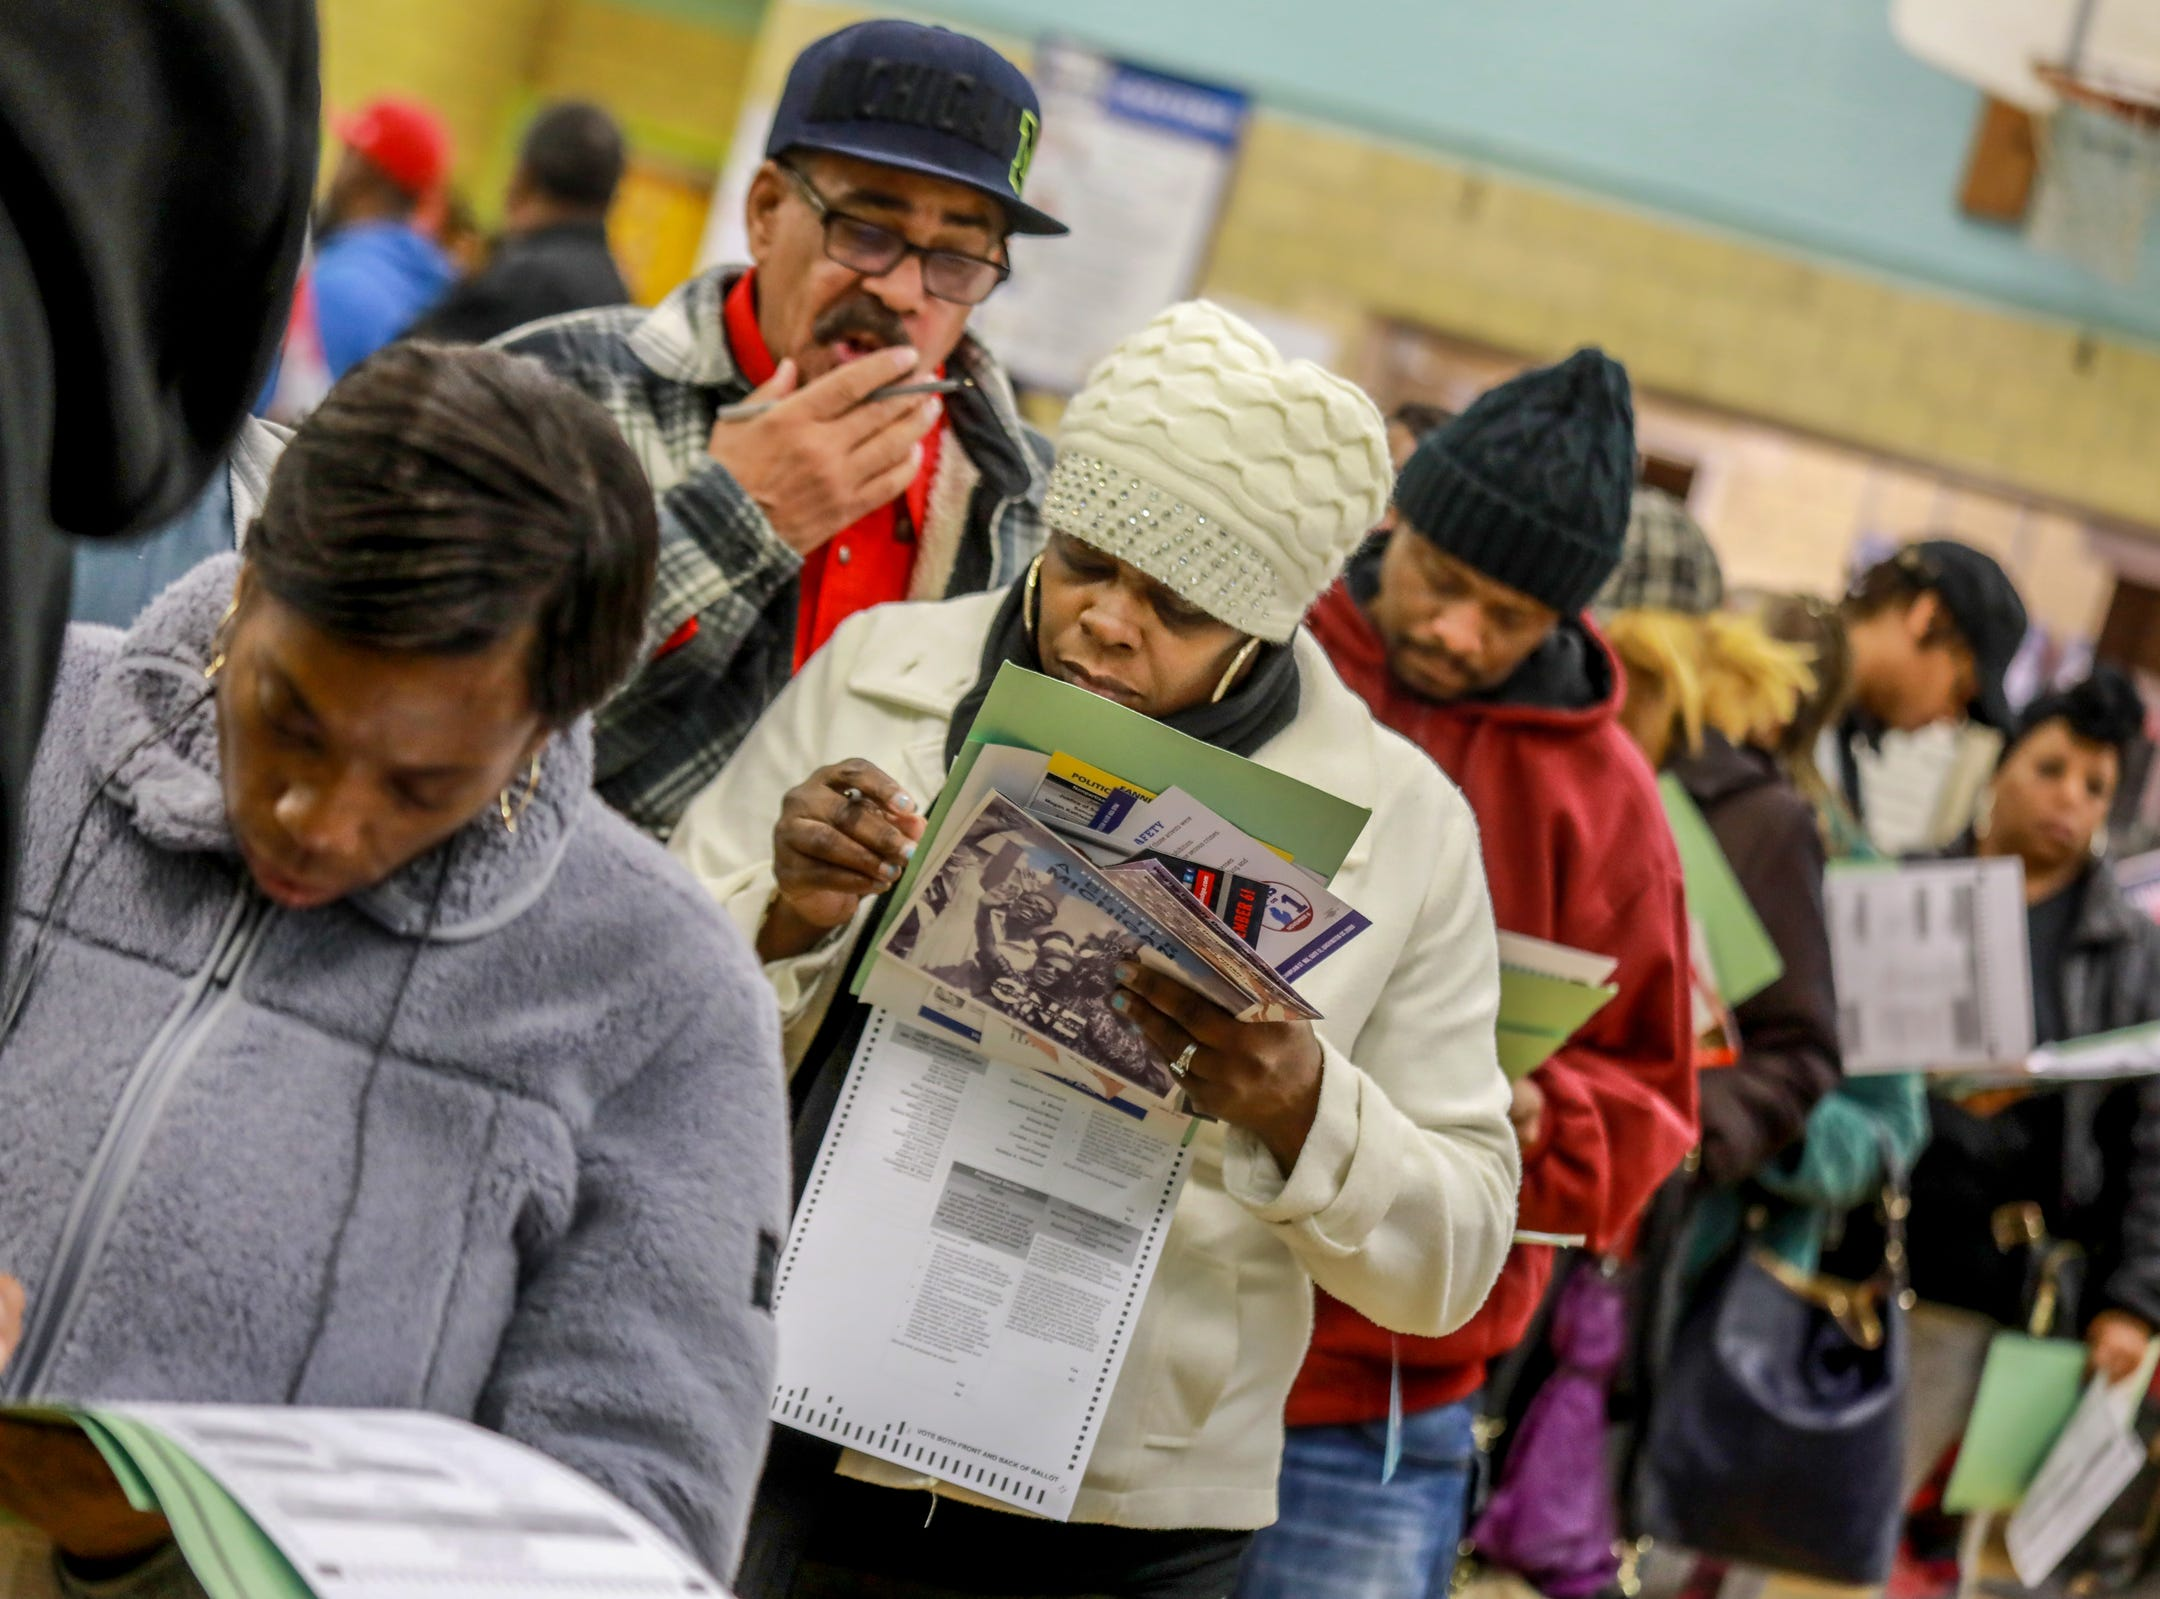 Lela Jamison, 53, of Detroit looks over her ballot as she stands in line waiting to vote at Bow Elementary School  where multiple precincts are located for the midterm elections in Detroit on Tuesday, Nov. 6, 2018.